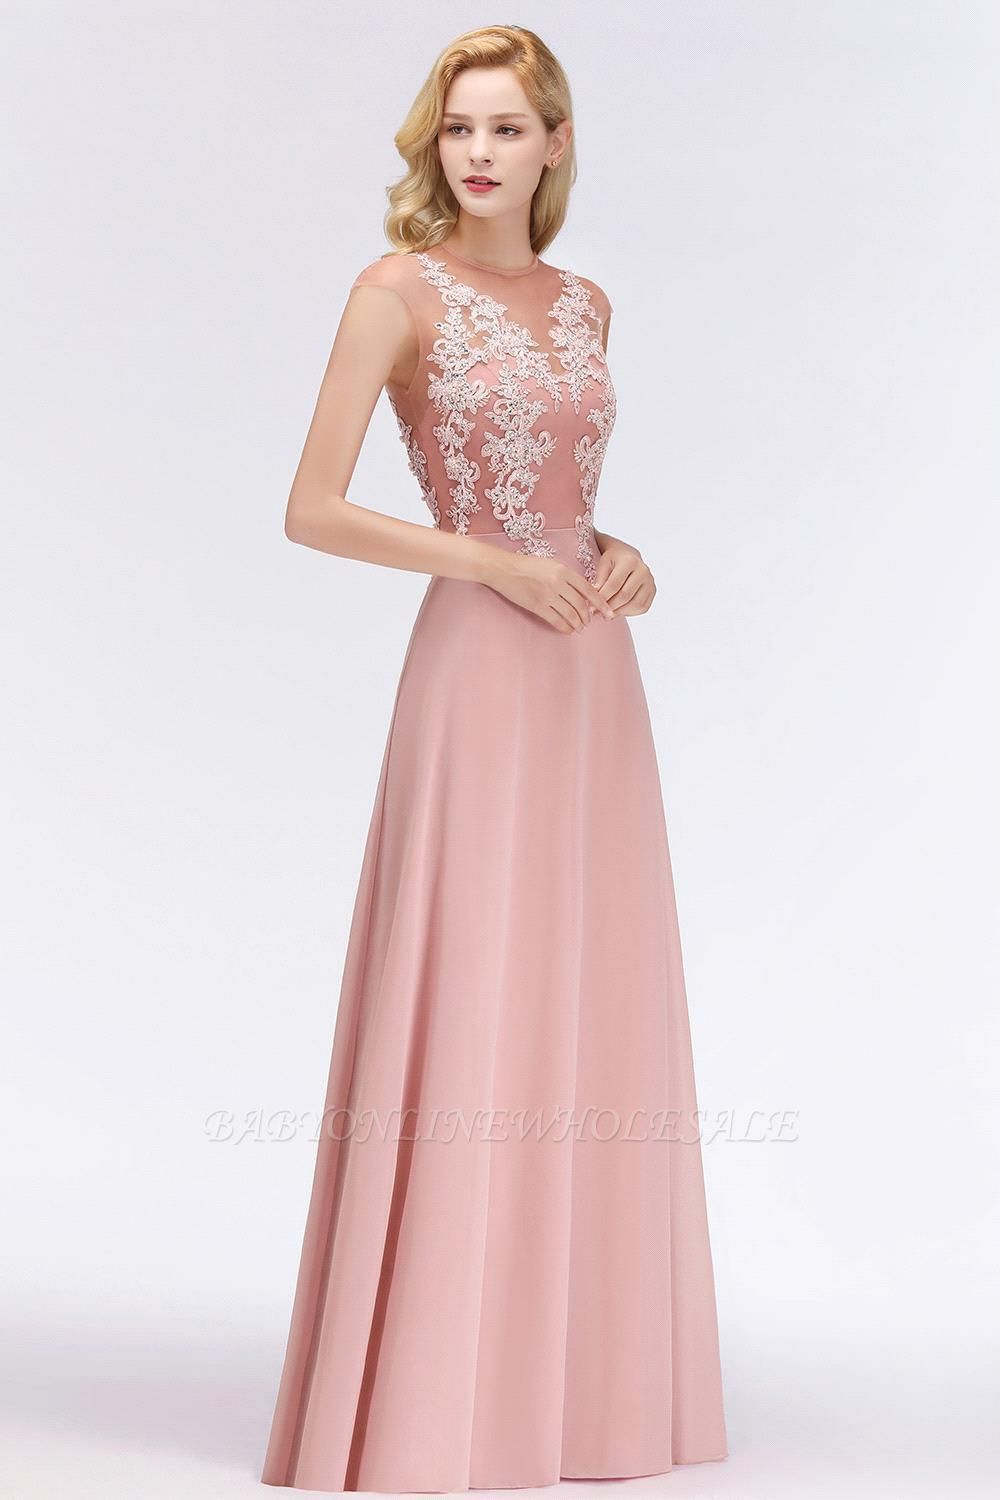 Cap Sleeve Lace Appliques Beads Slim A-line Evening Prom Dress for Women